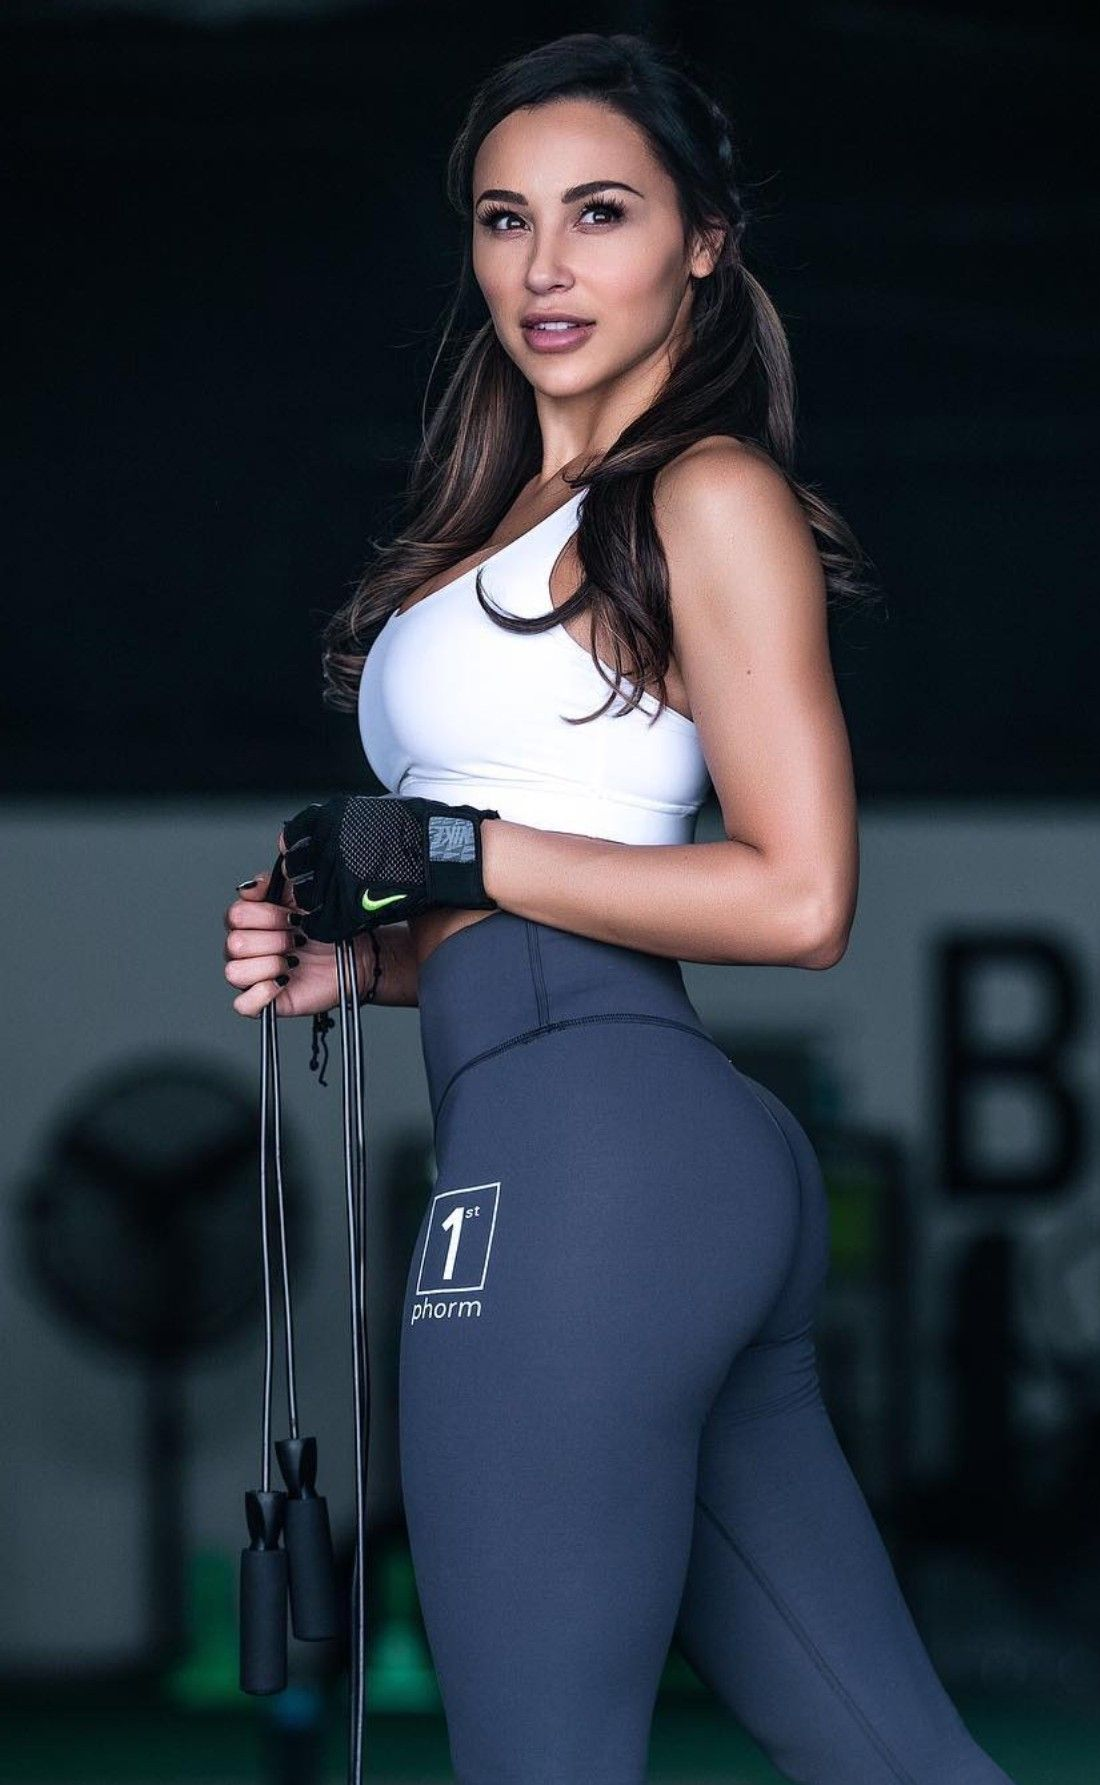 These Are The Tightest Yoga Pants I ve Ever Seen - Page 24 of 28 - Djuff 1d064554174e